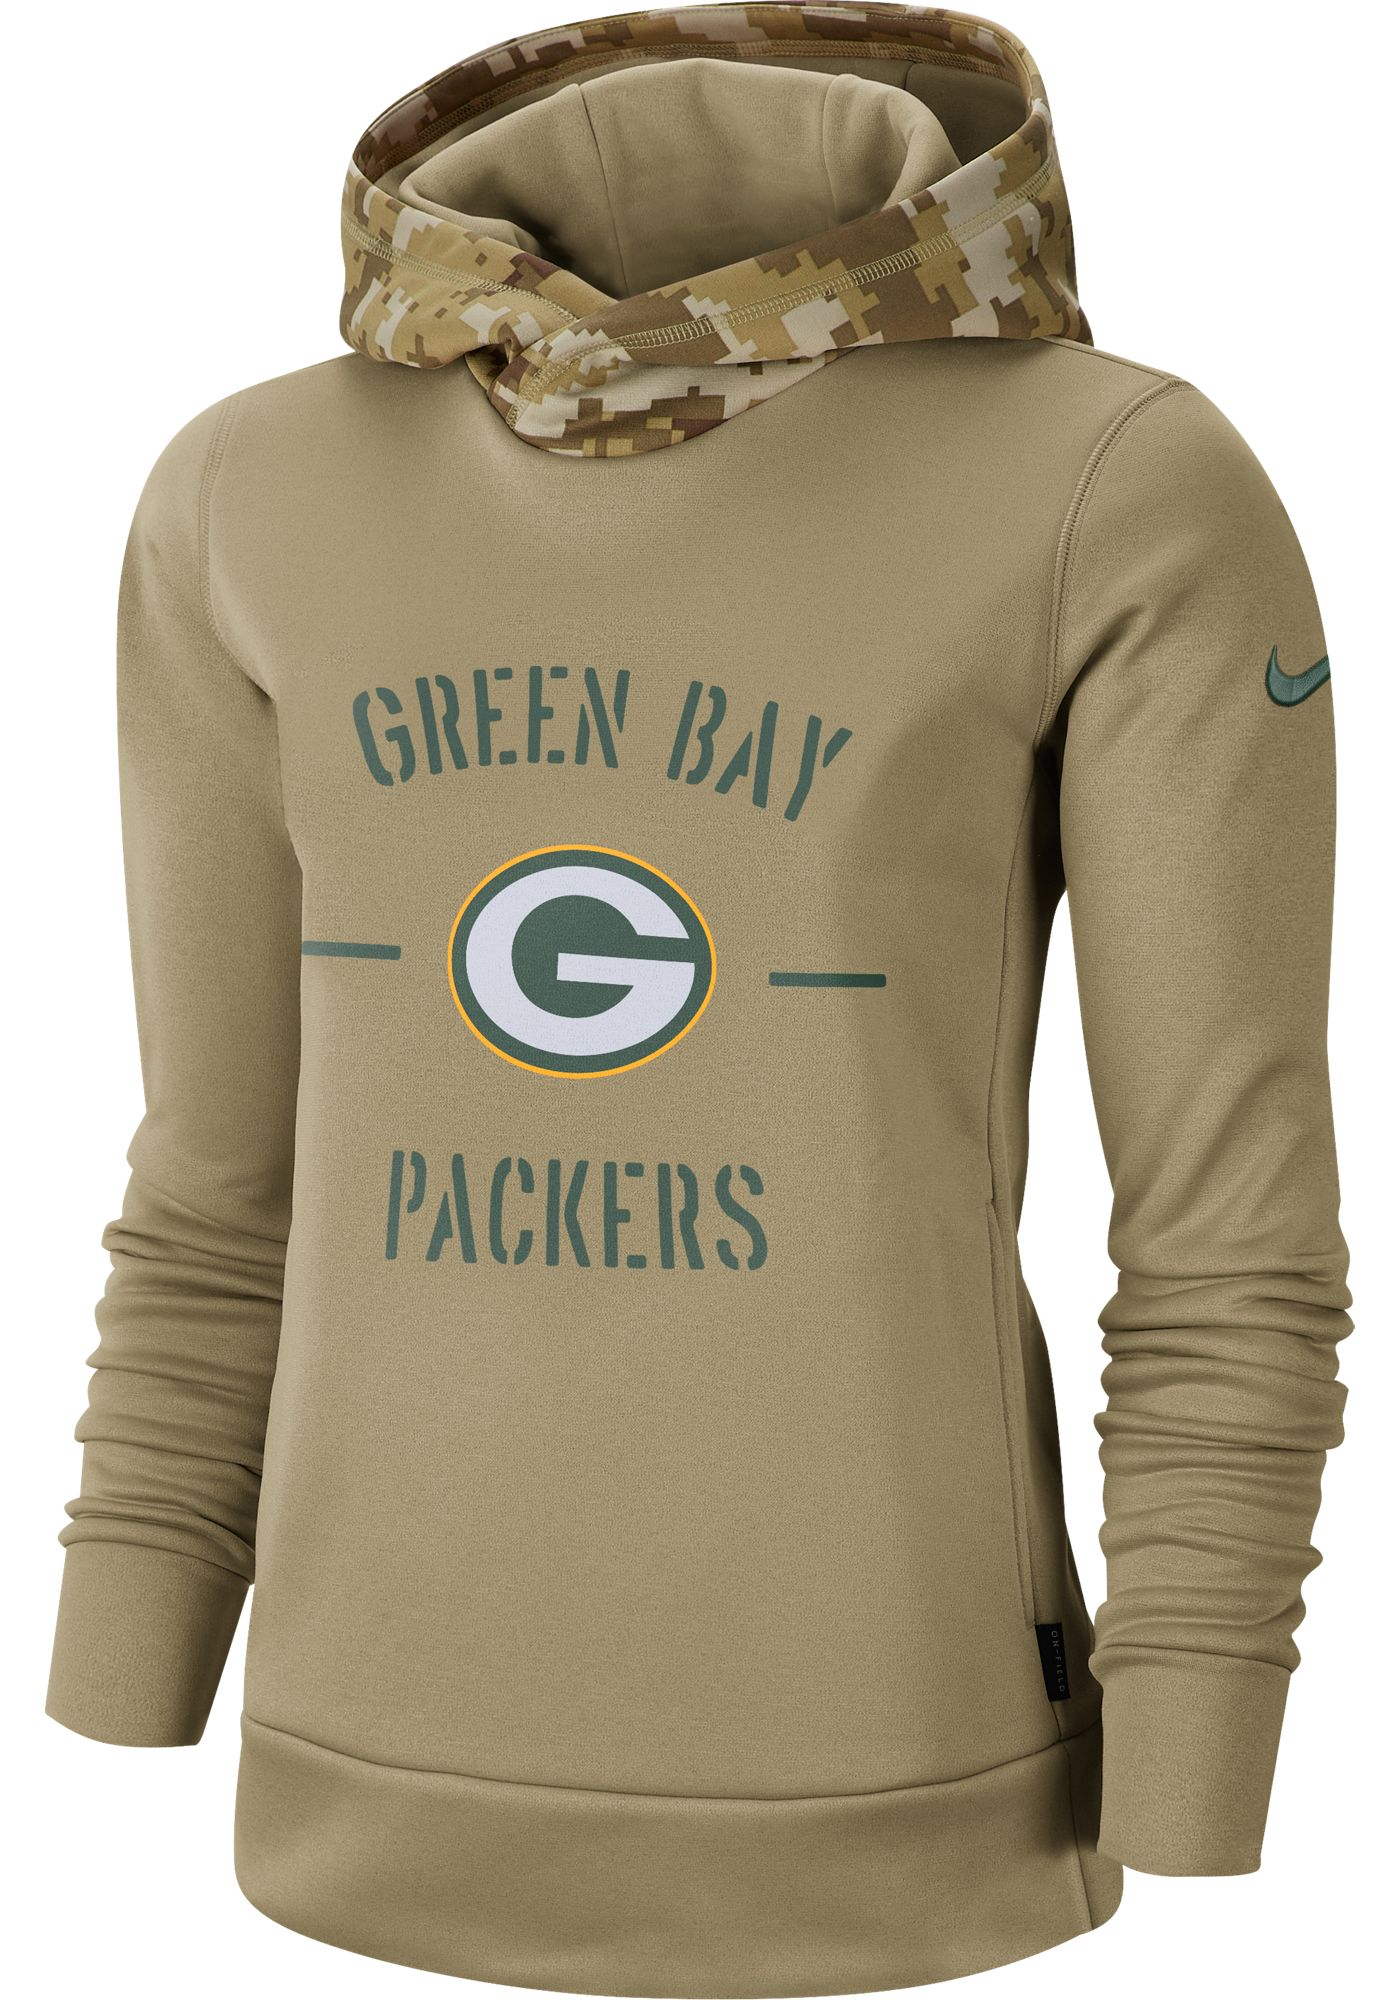 Nike Women's Salute to Service Green Bay Packers Therma-FIT Beige Camo Hoodie